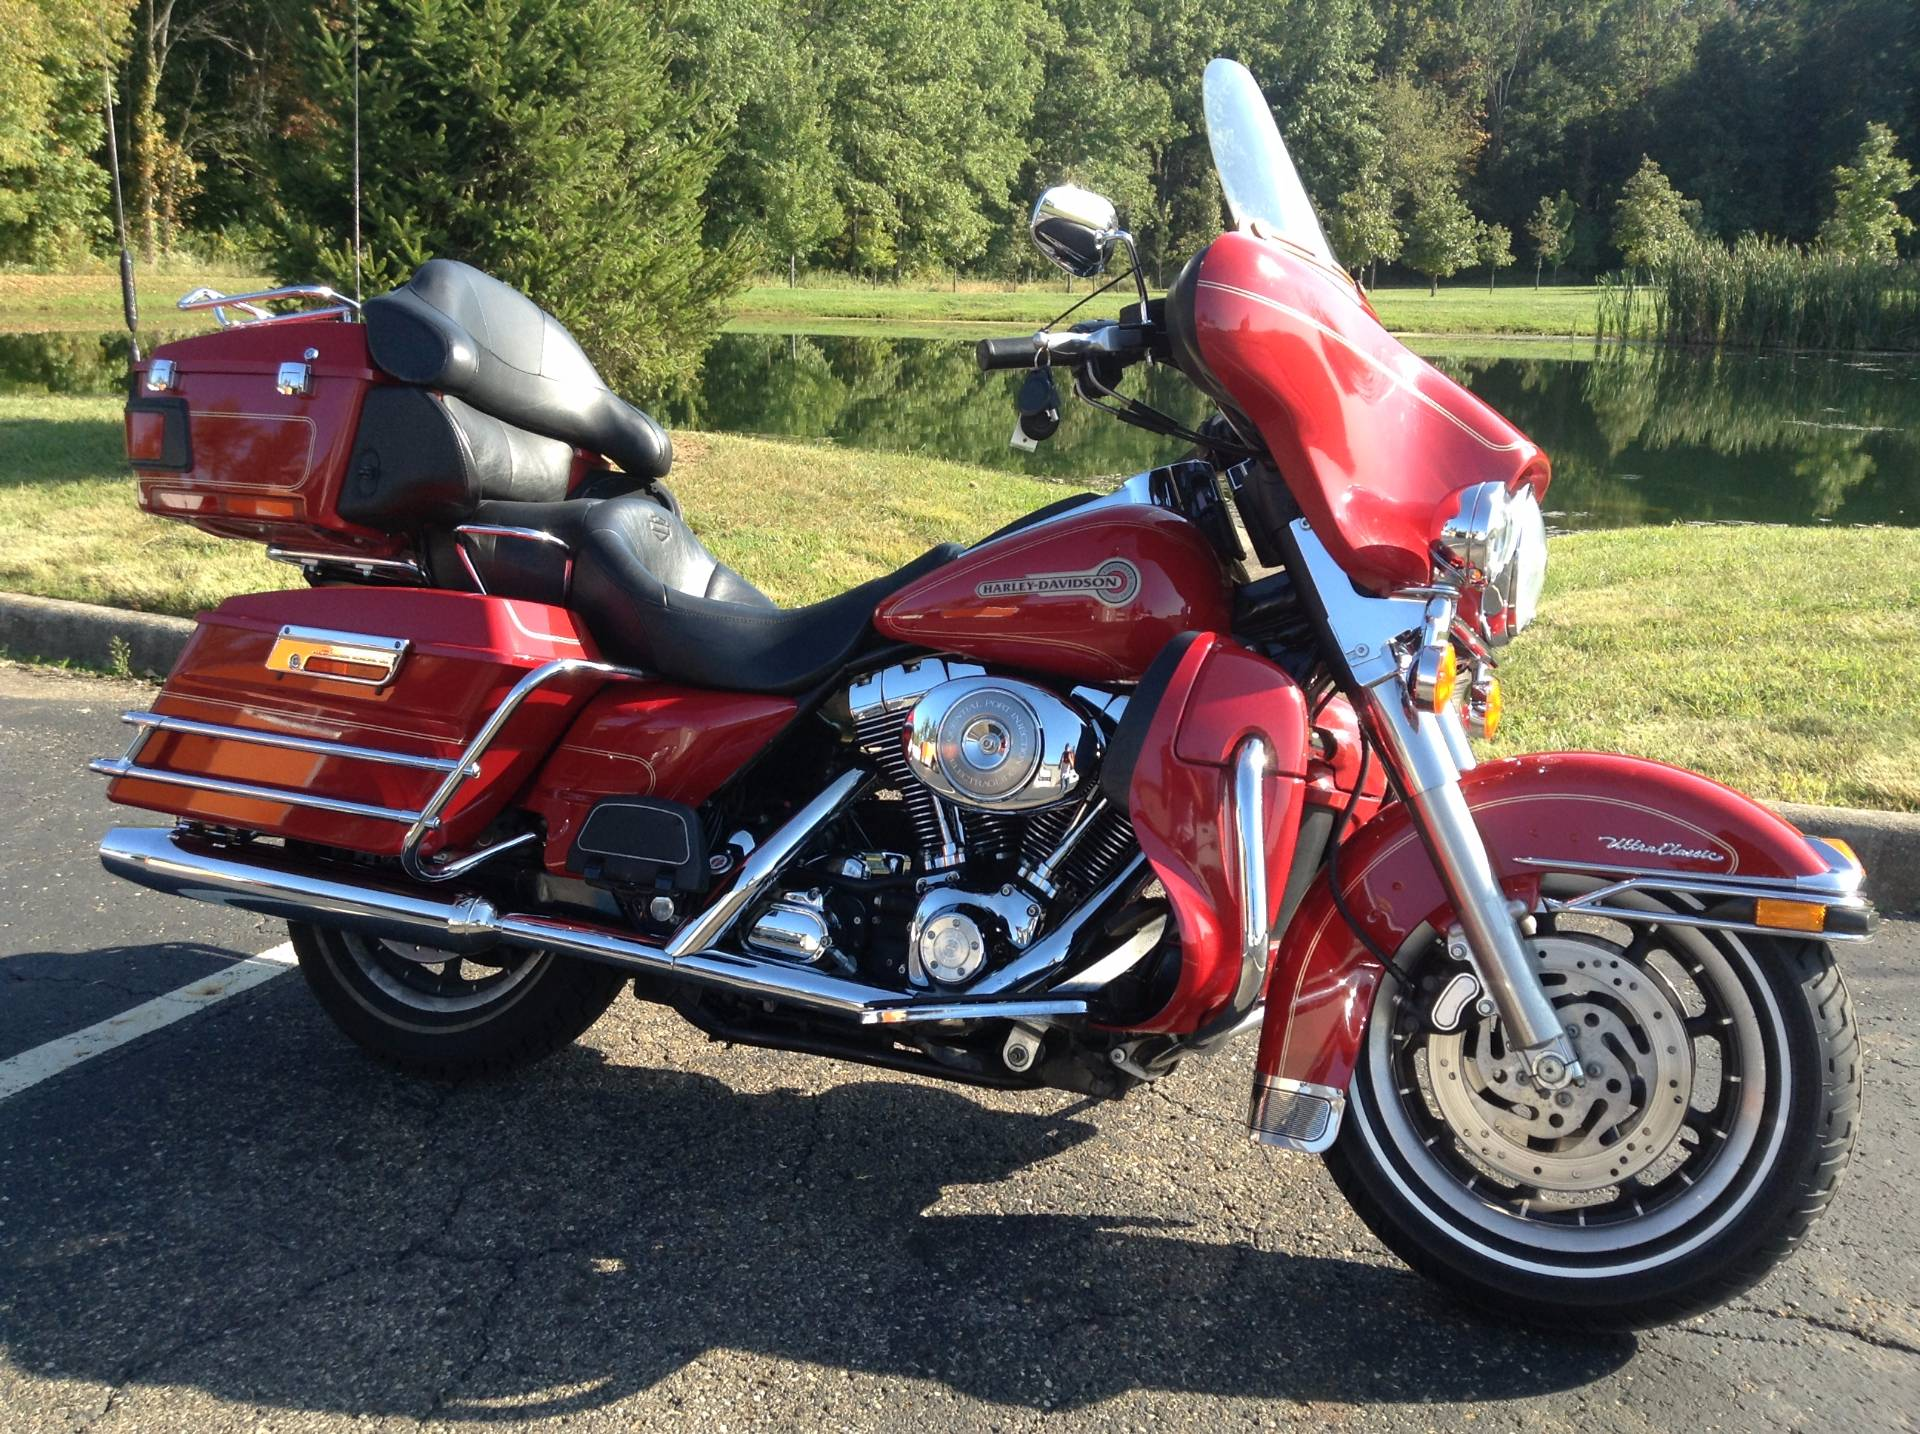 2005 Harley-Davidson FLHTCUI Ultra Classic® Electra Glide® Firefighter Special Edition in Sunbury, Ohio - Photo 8